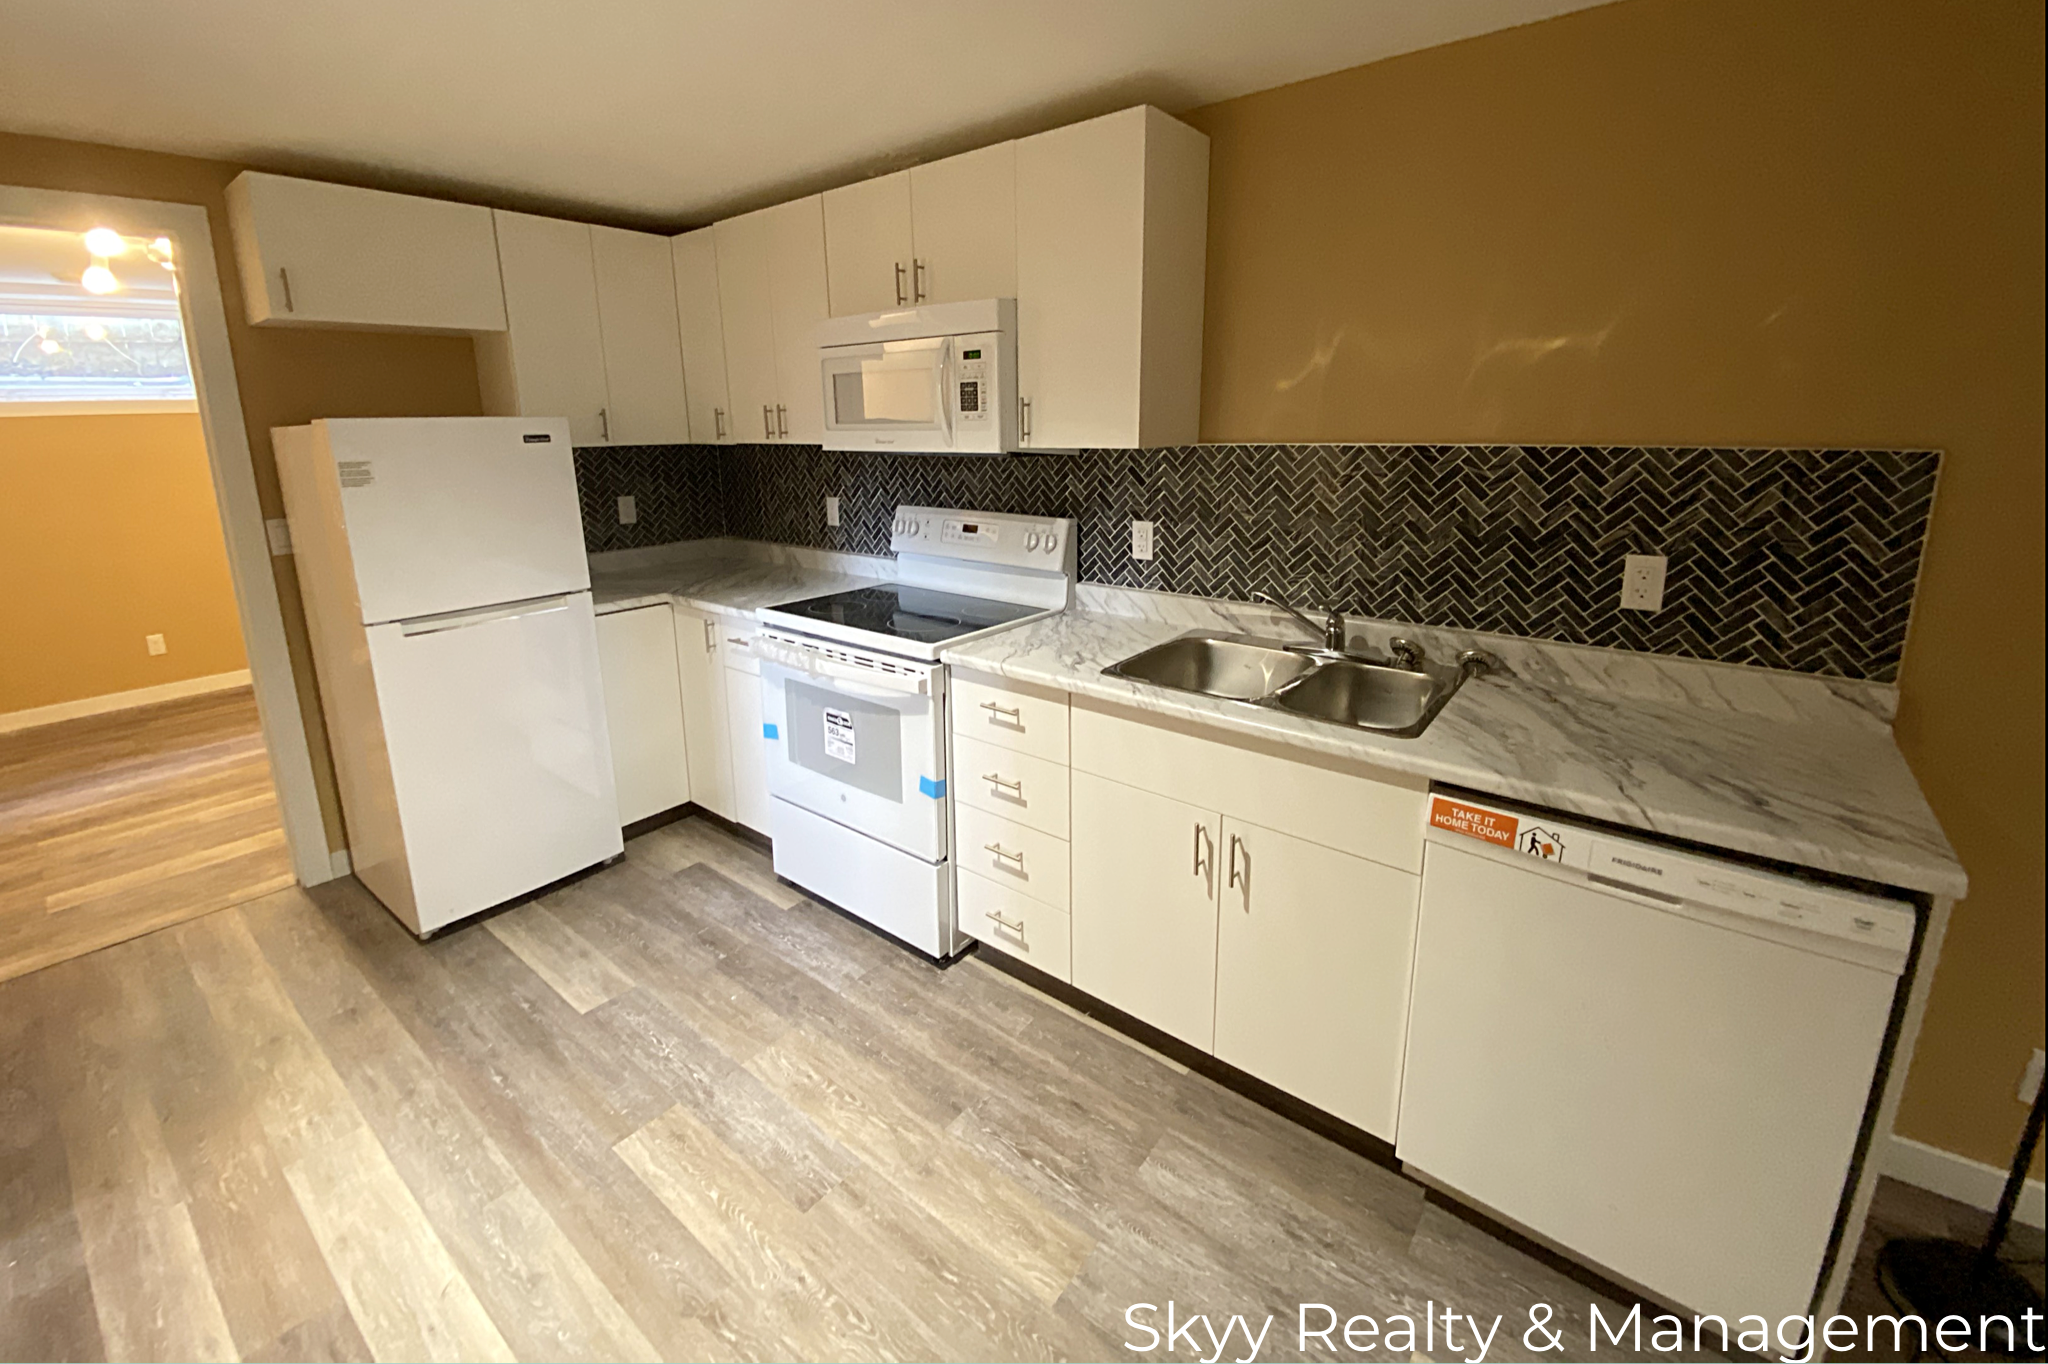 Main Photo: 5623 142 Ave in Edmonton: House for rent